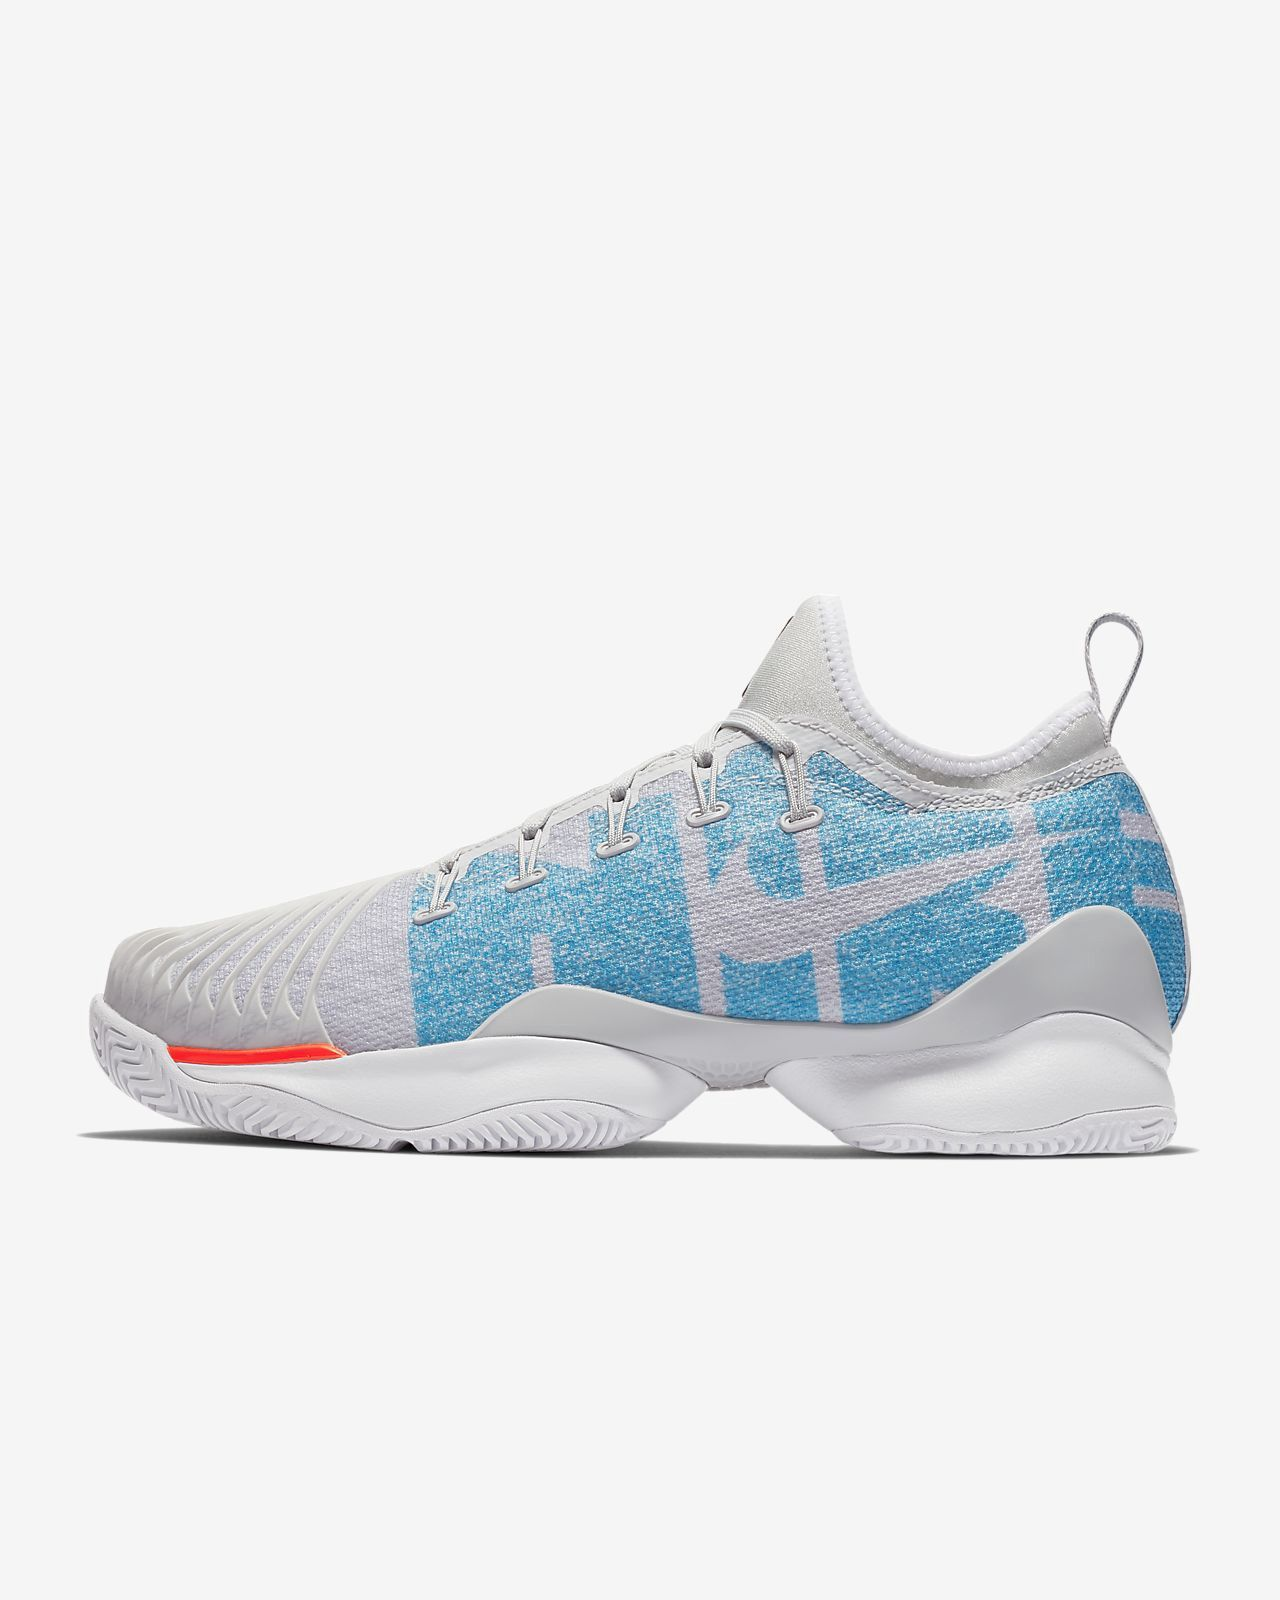 Cheap Discount Nike Tennis Shoes,Court Air Zoom Ultra React